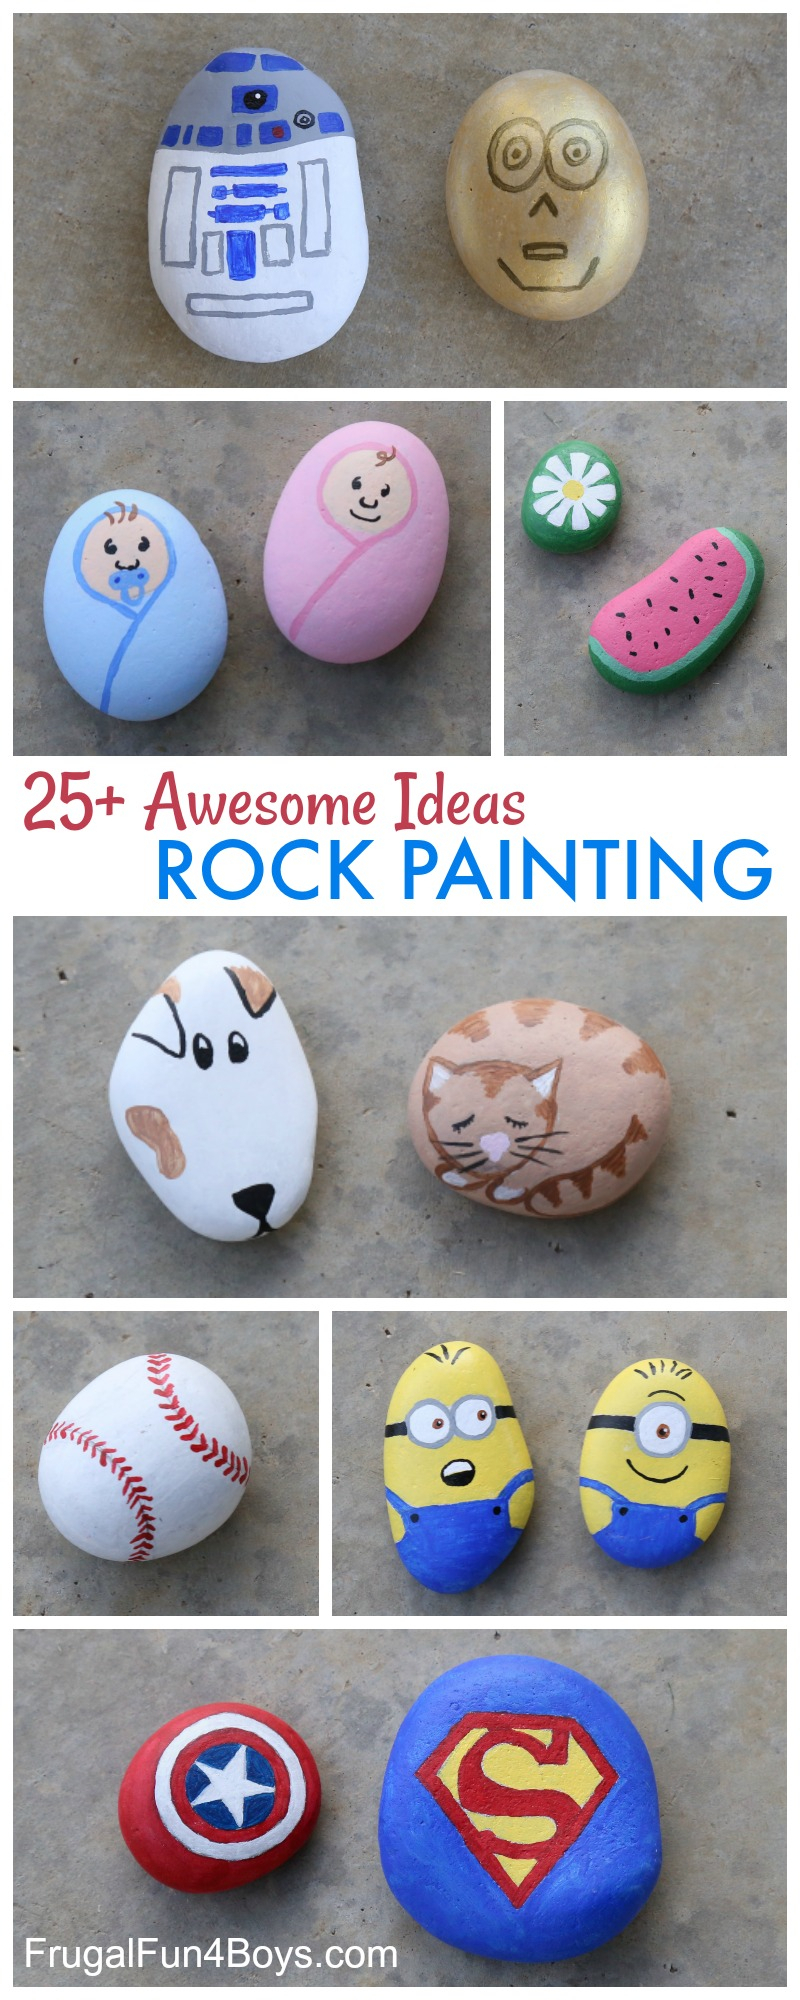 10 Fabulous Rock Painting Ideas For Kids 25 awesome rock painting ideas frugal fun for boys and girls 2020